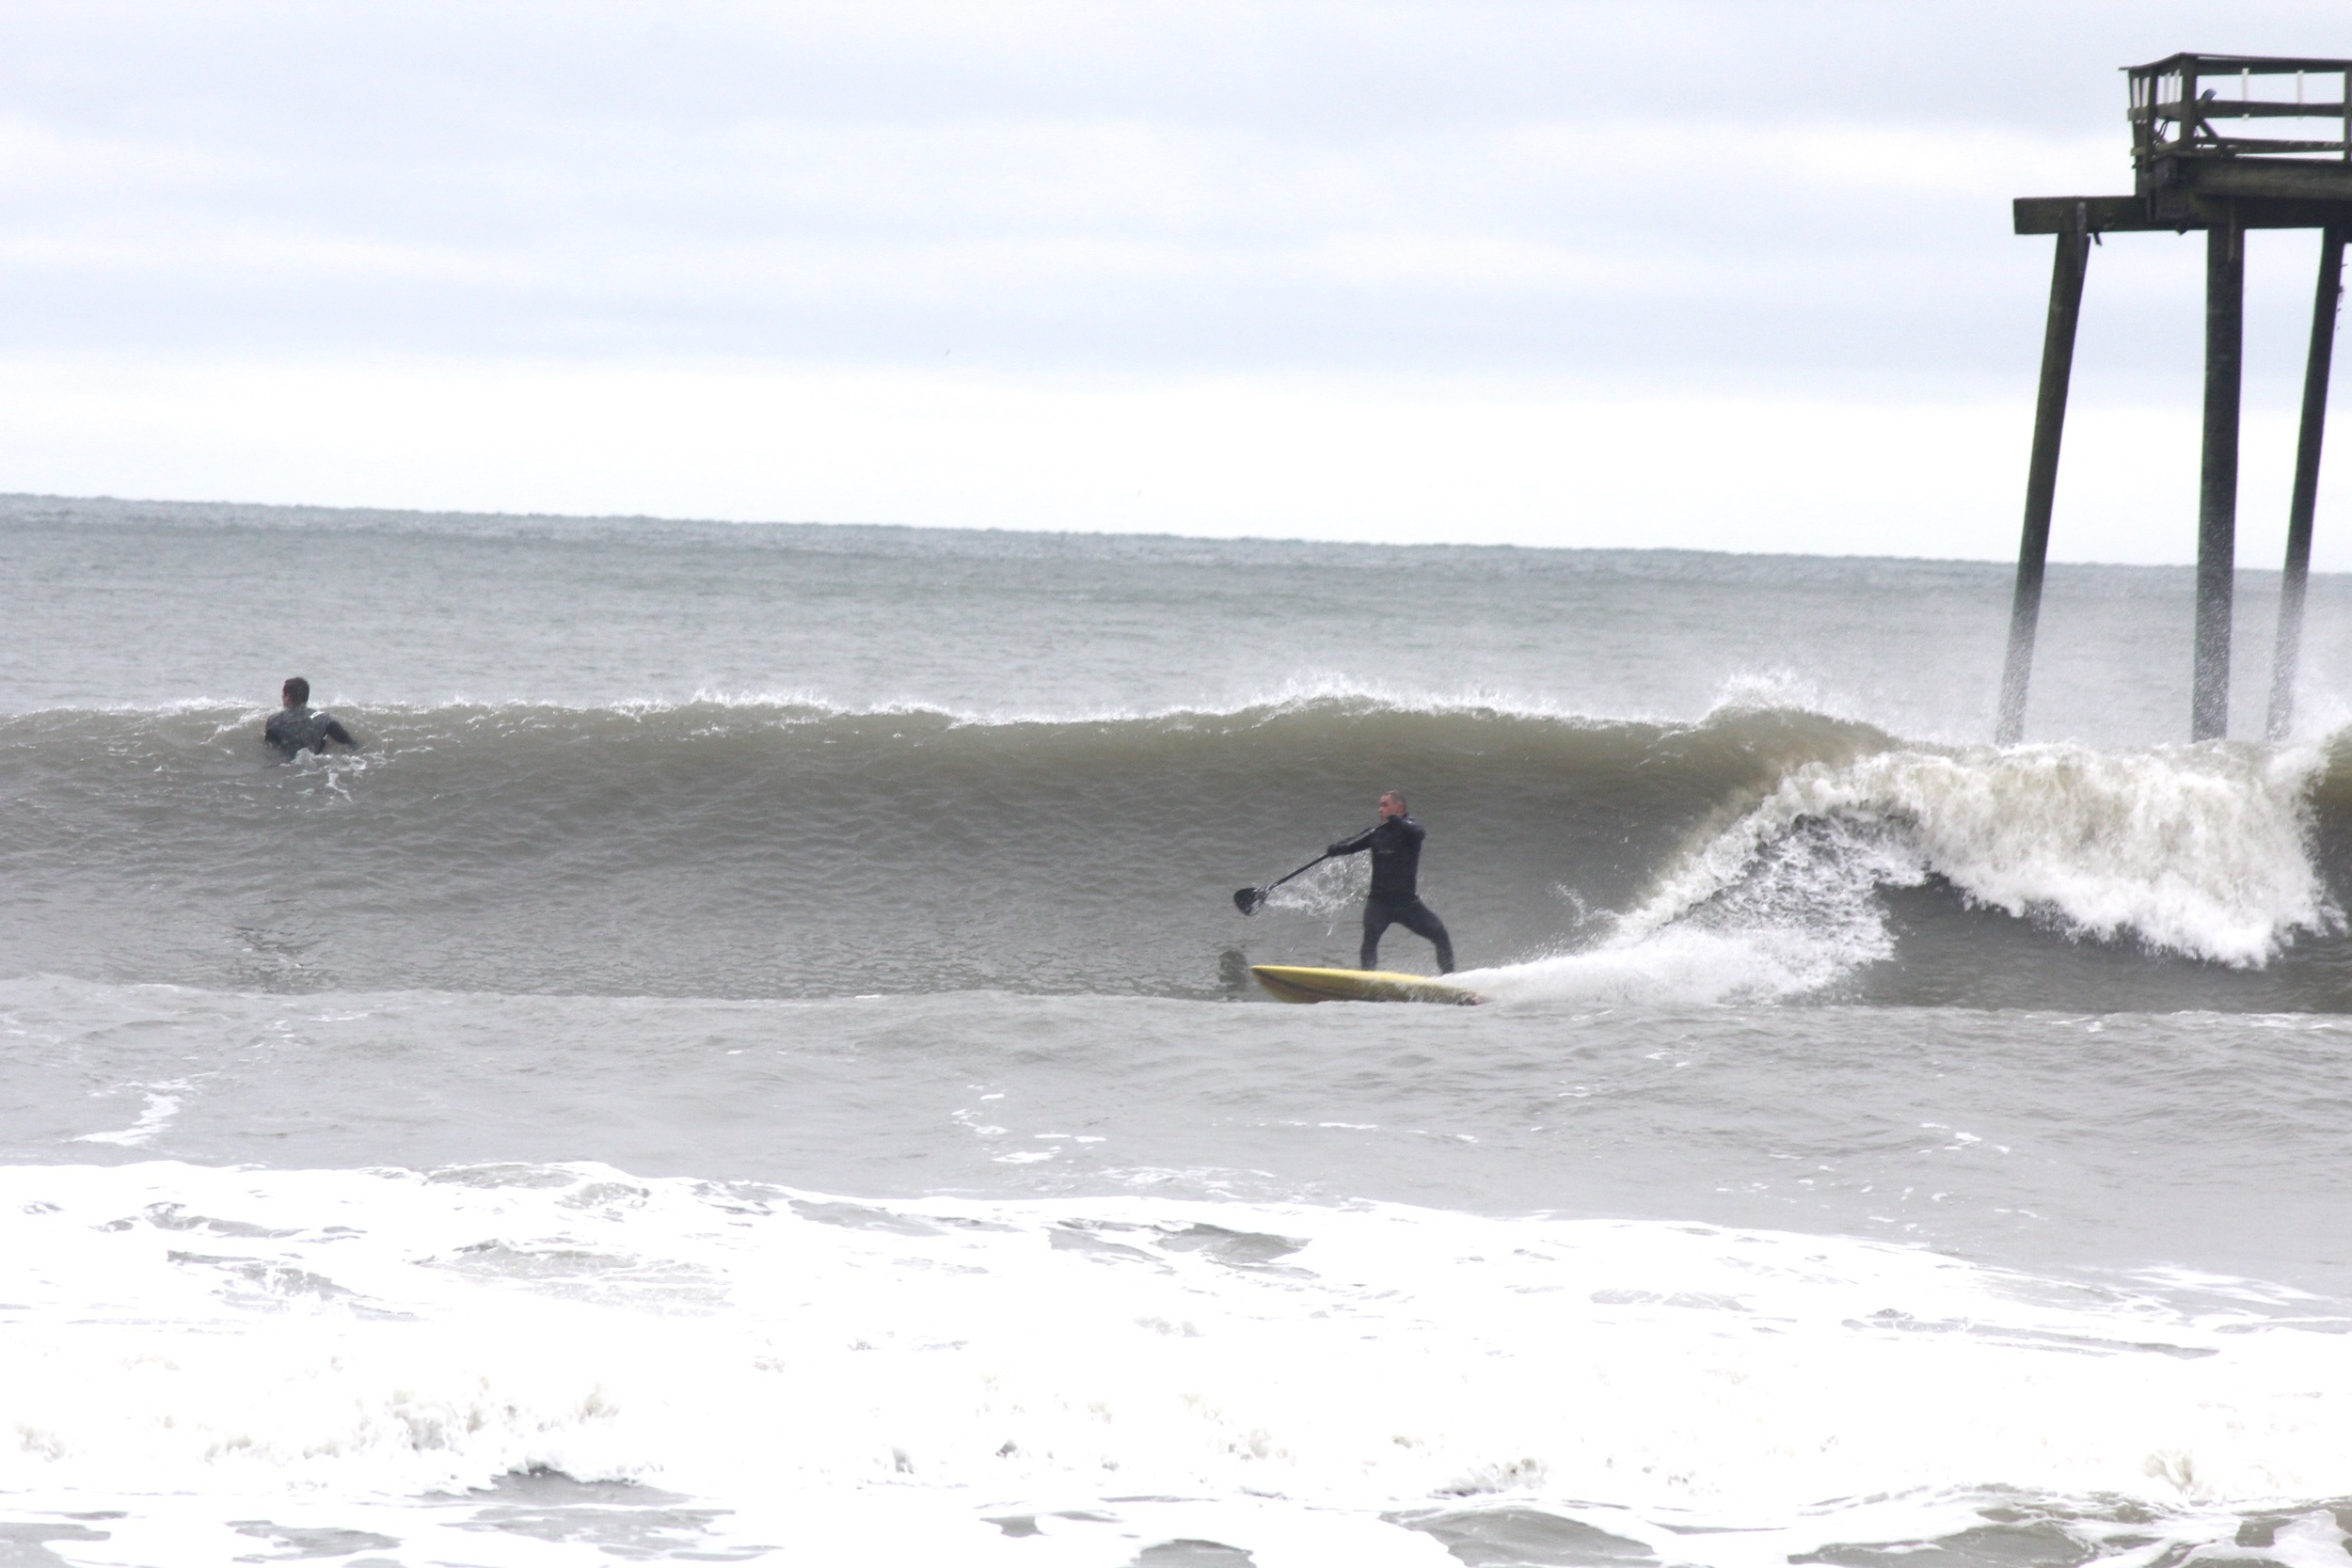 Surf Machine on Jacky's 7'7 Accelerator Pro.  One wave from pier to pilings, to parking spots.